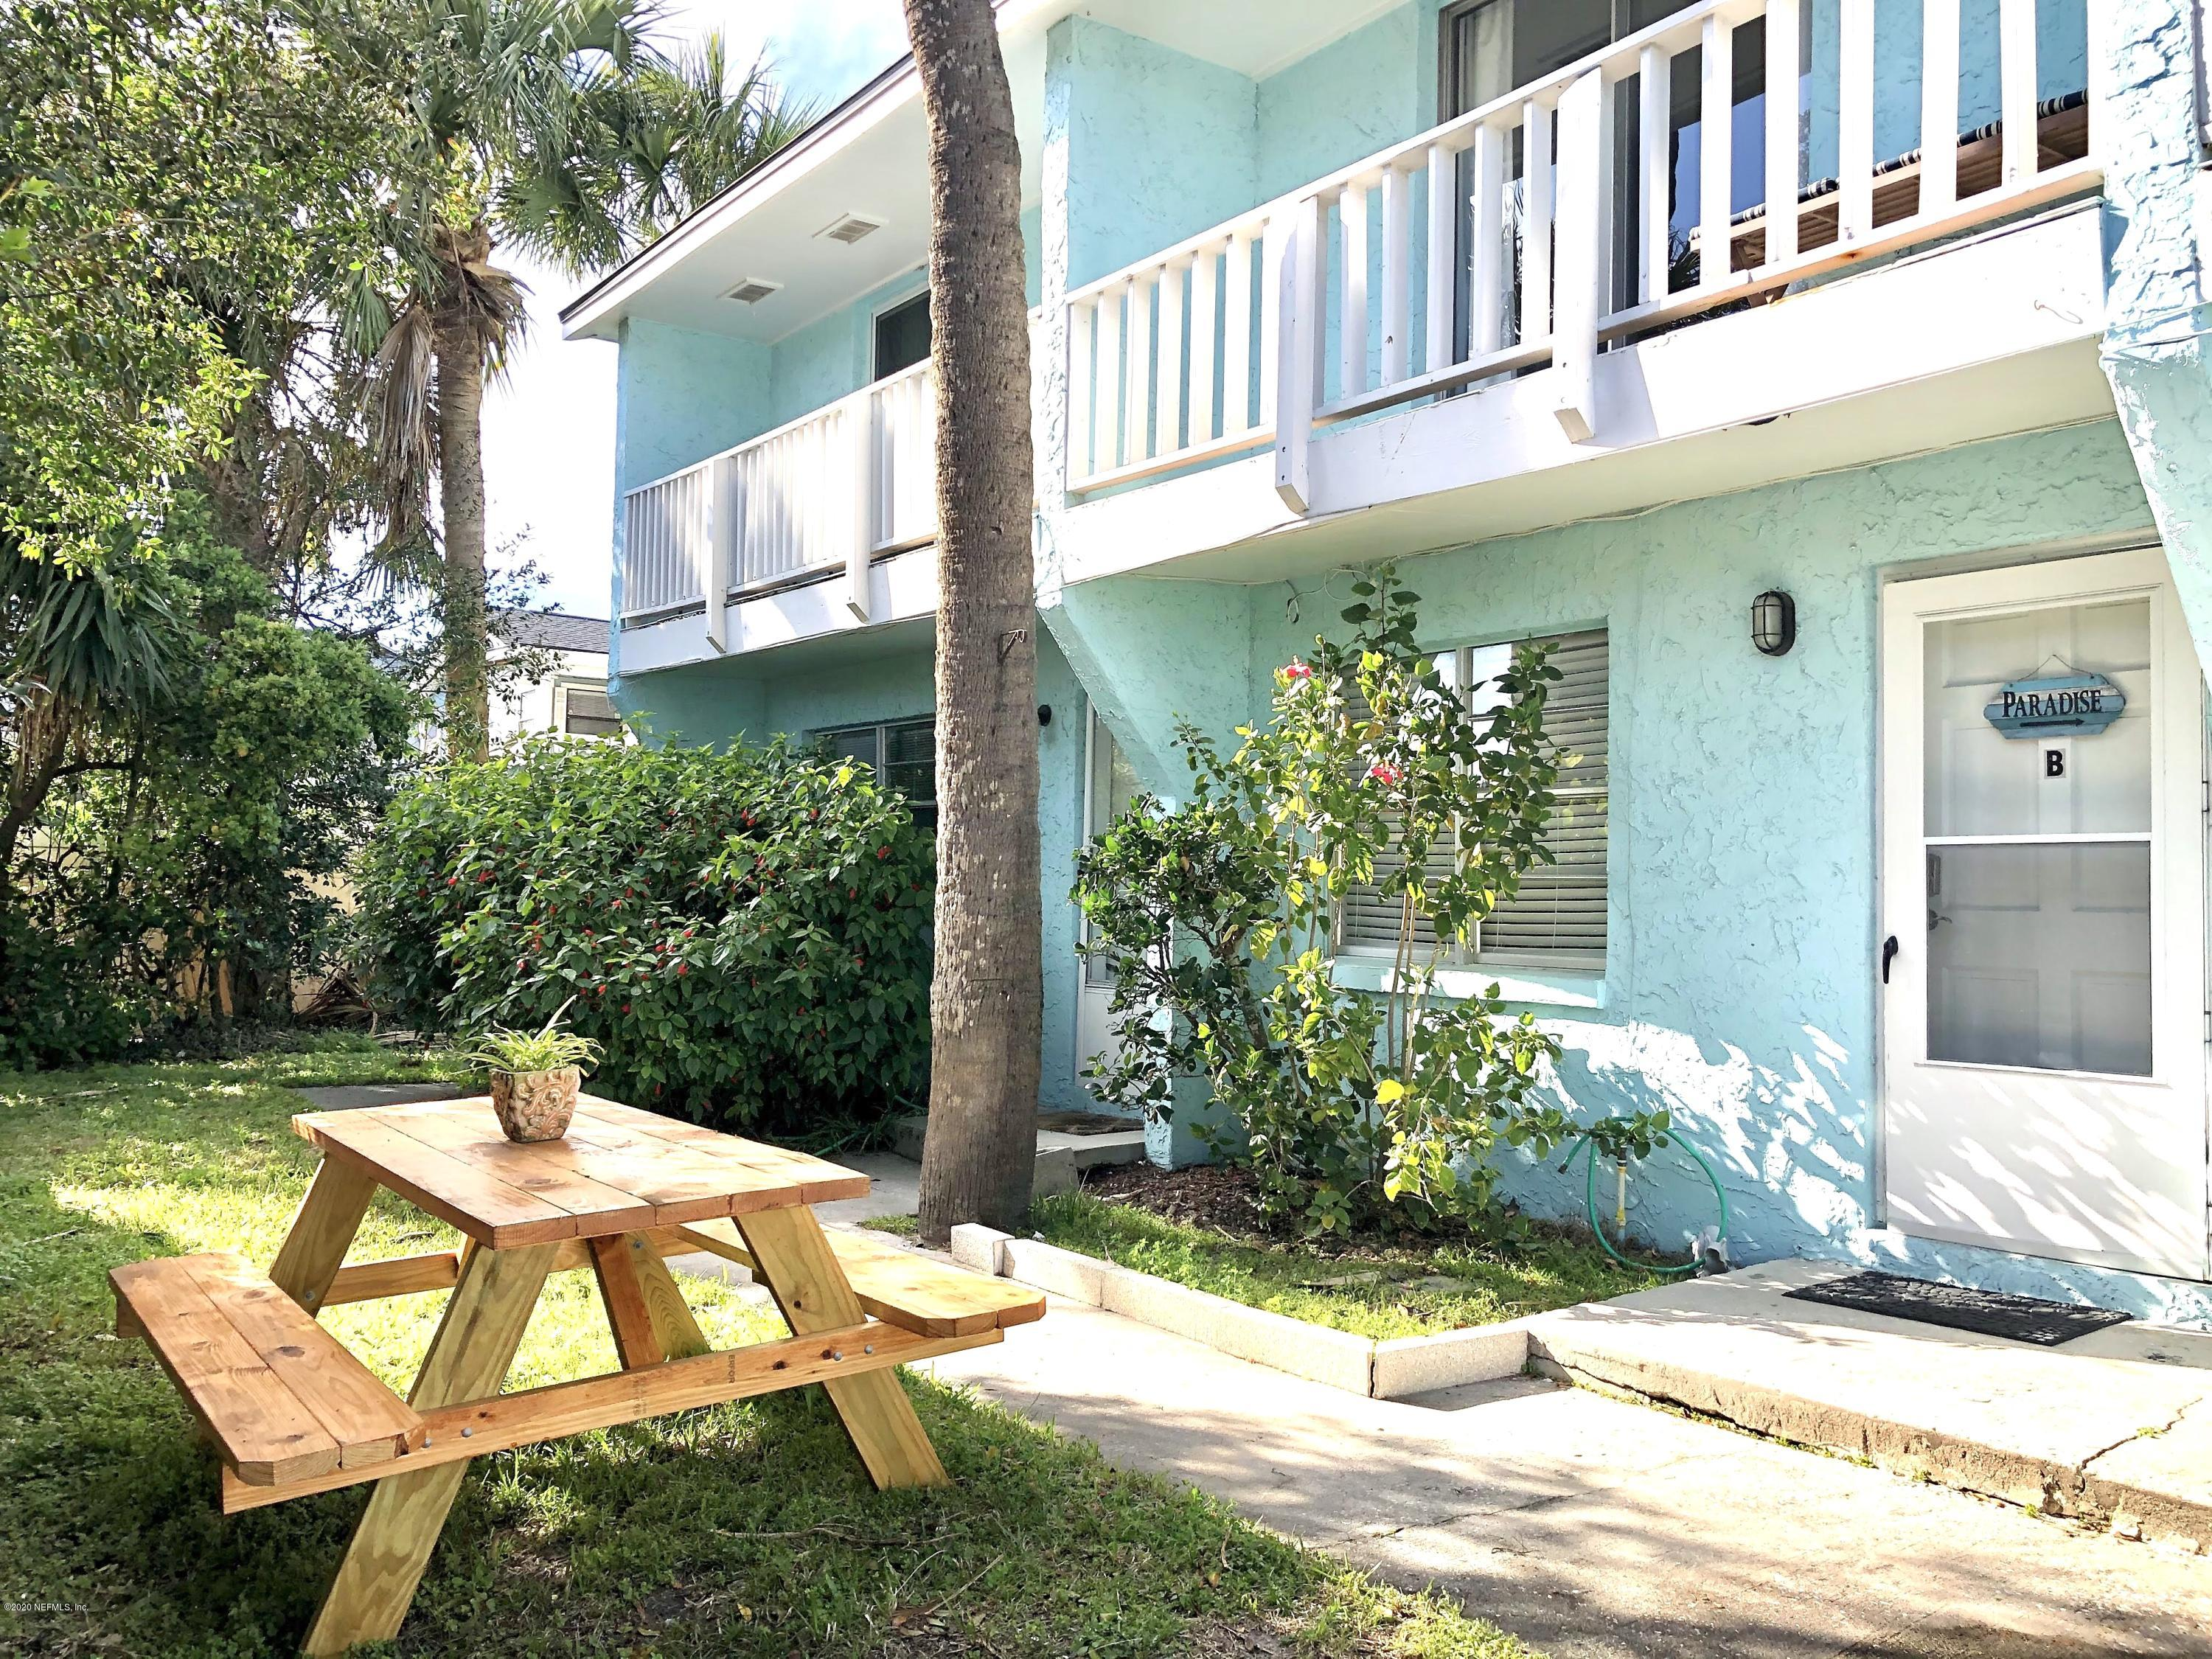 Property for sale at 1810 2ND ST N, Jacksonville Beach,  Florida 32250